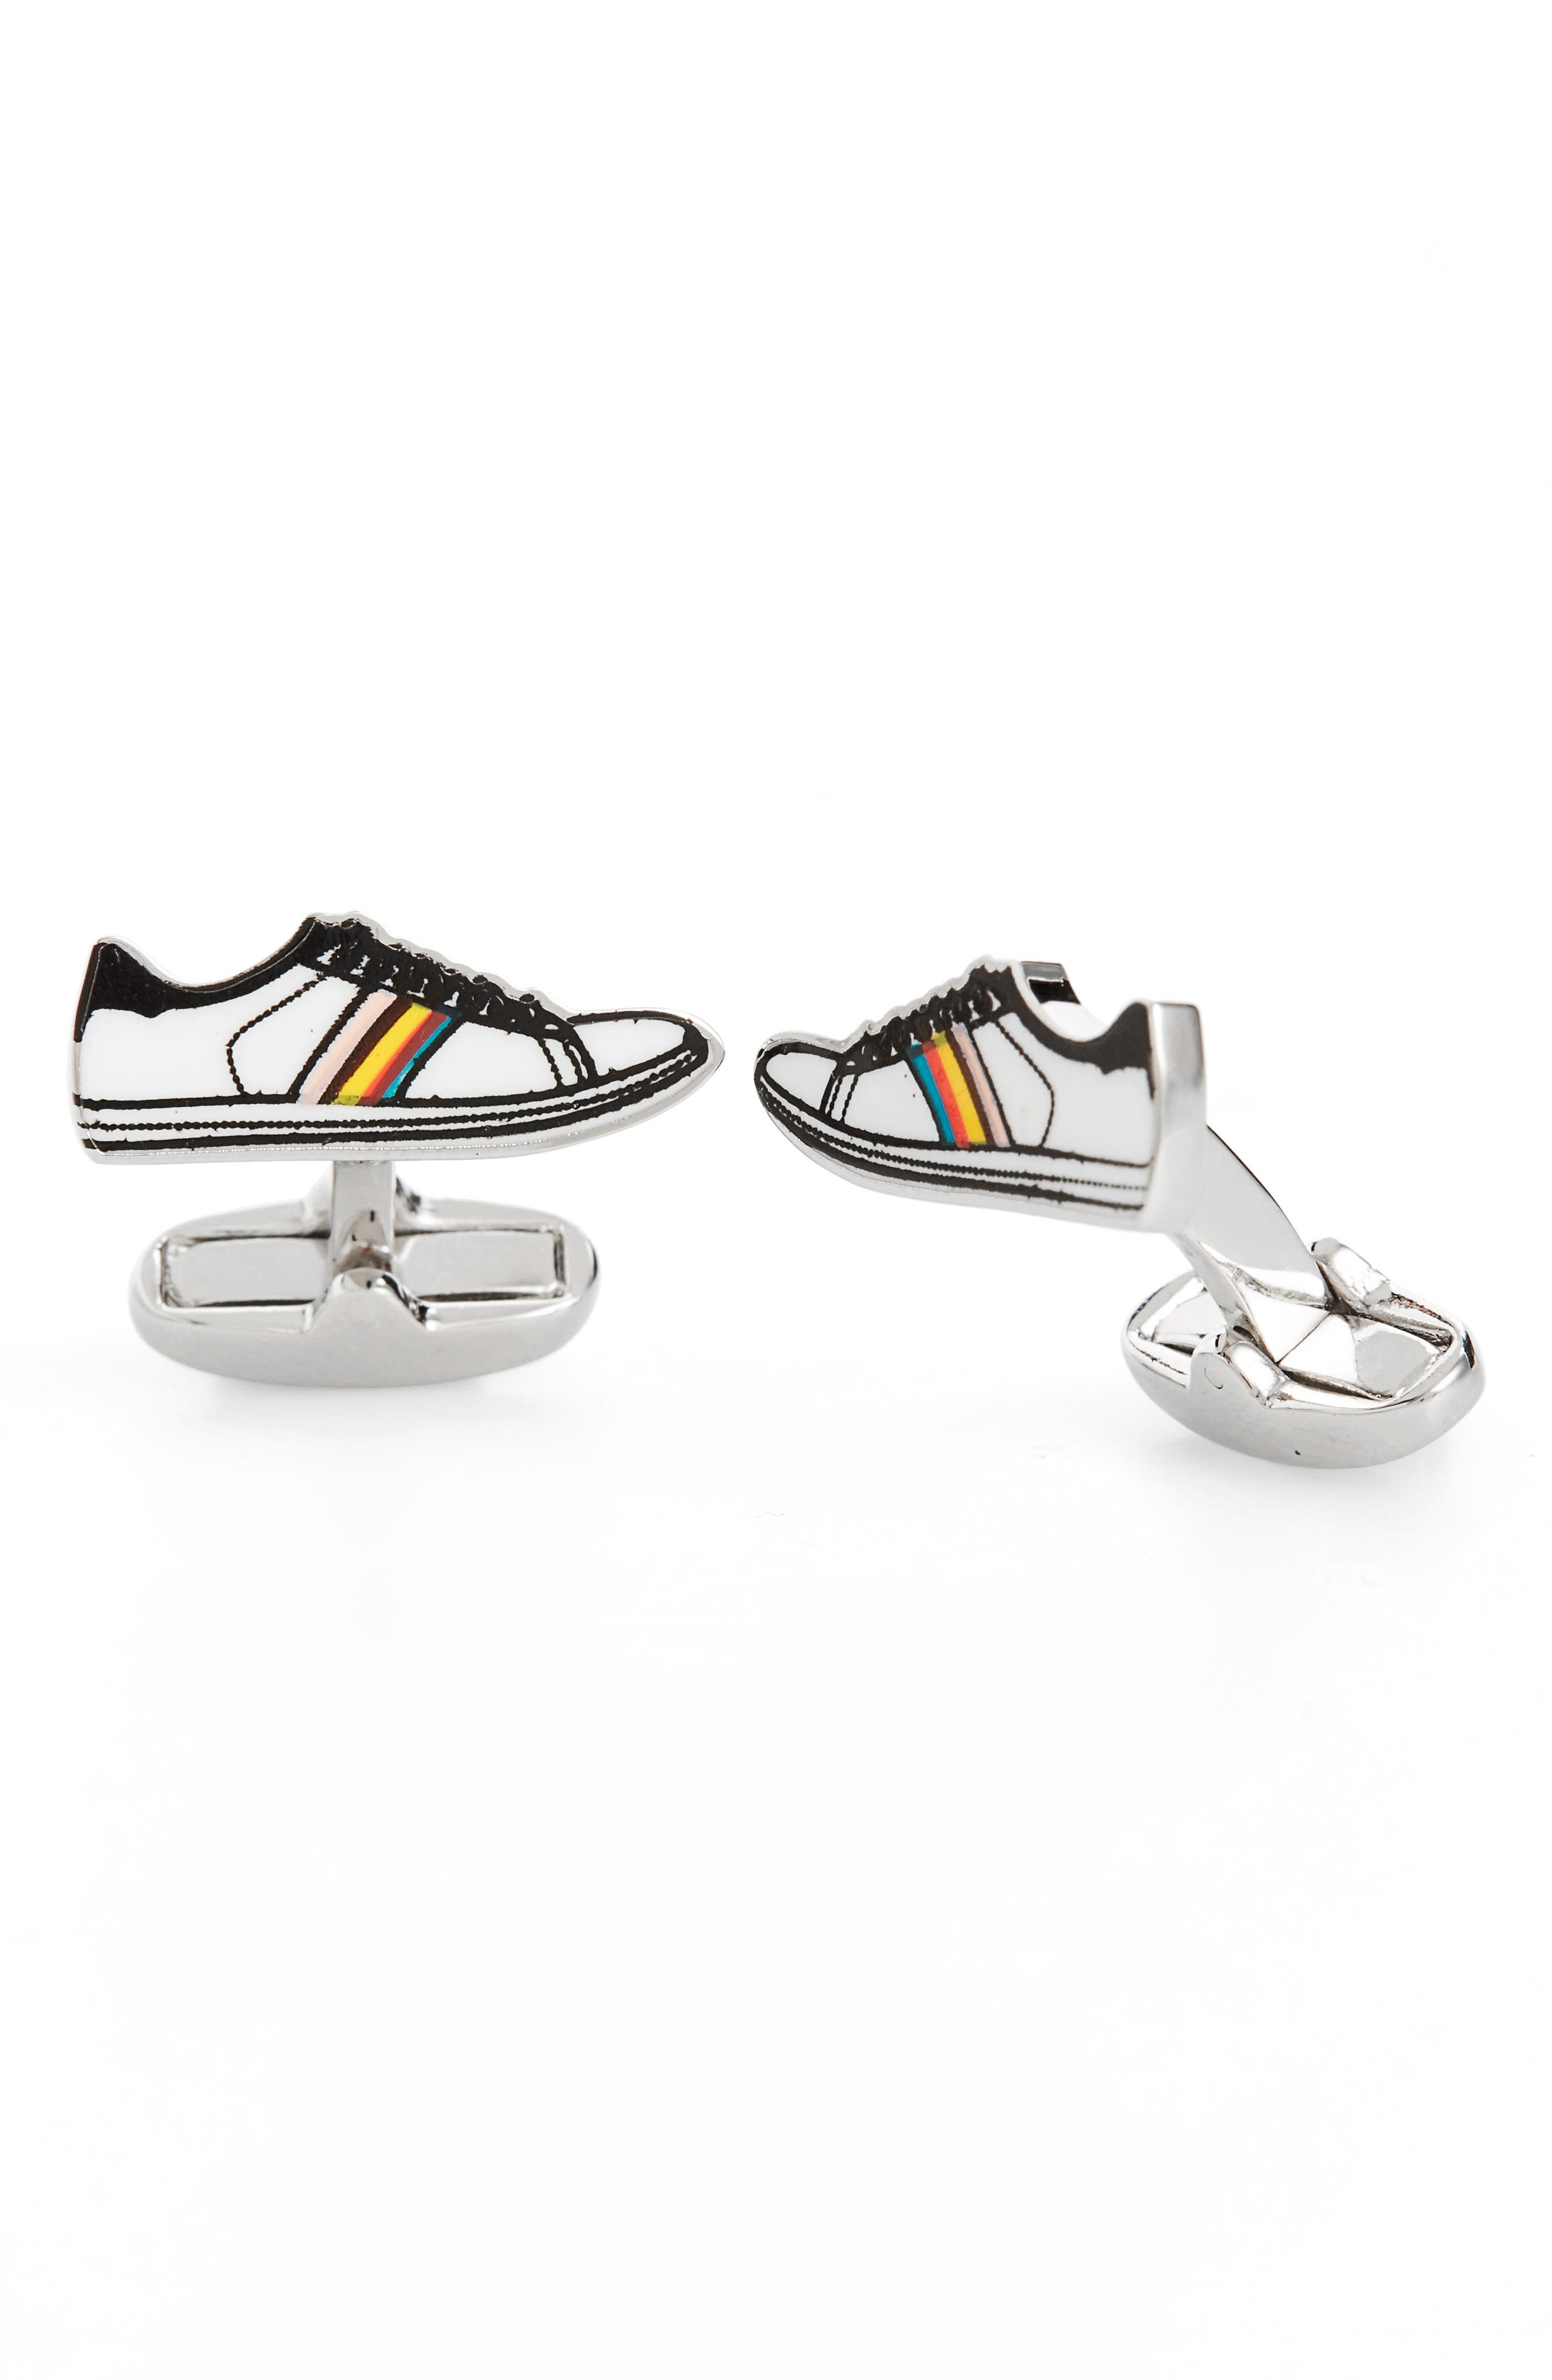 Trainer Cuff Links,                             Main thumbnail 1, color,                             100